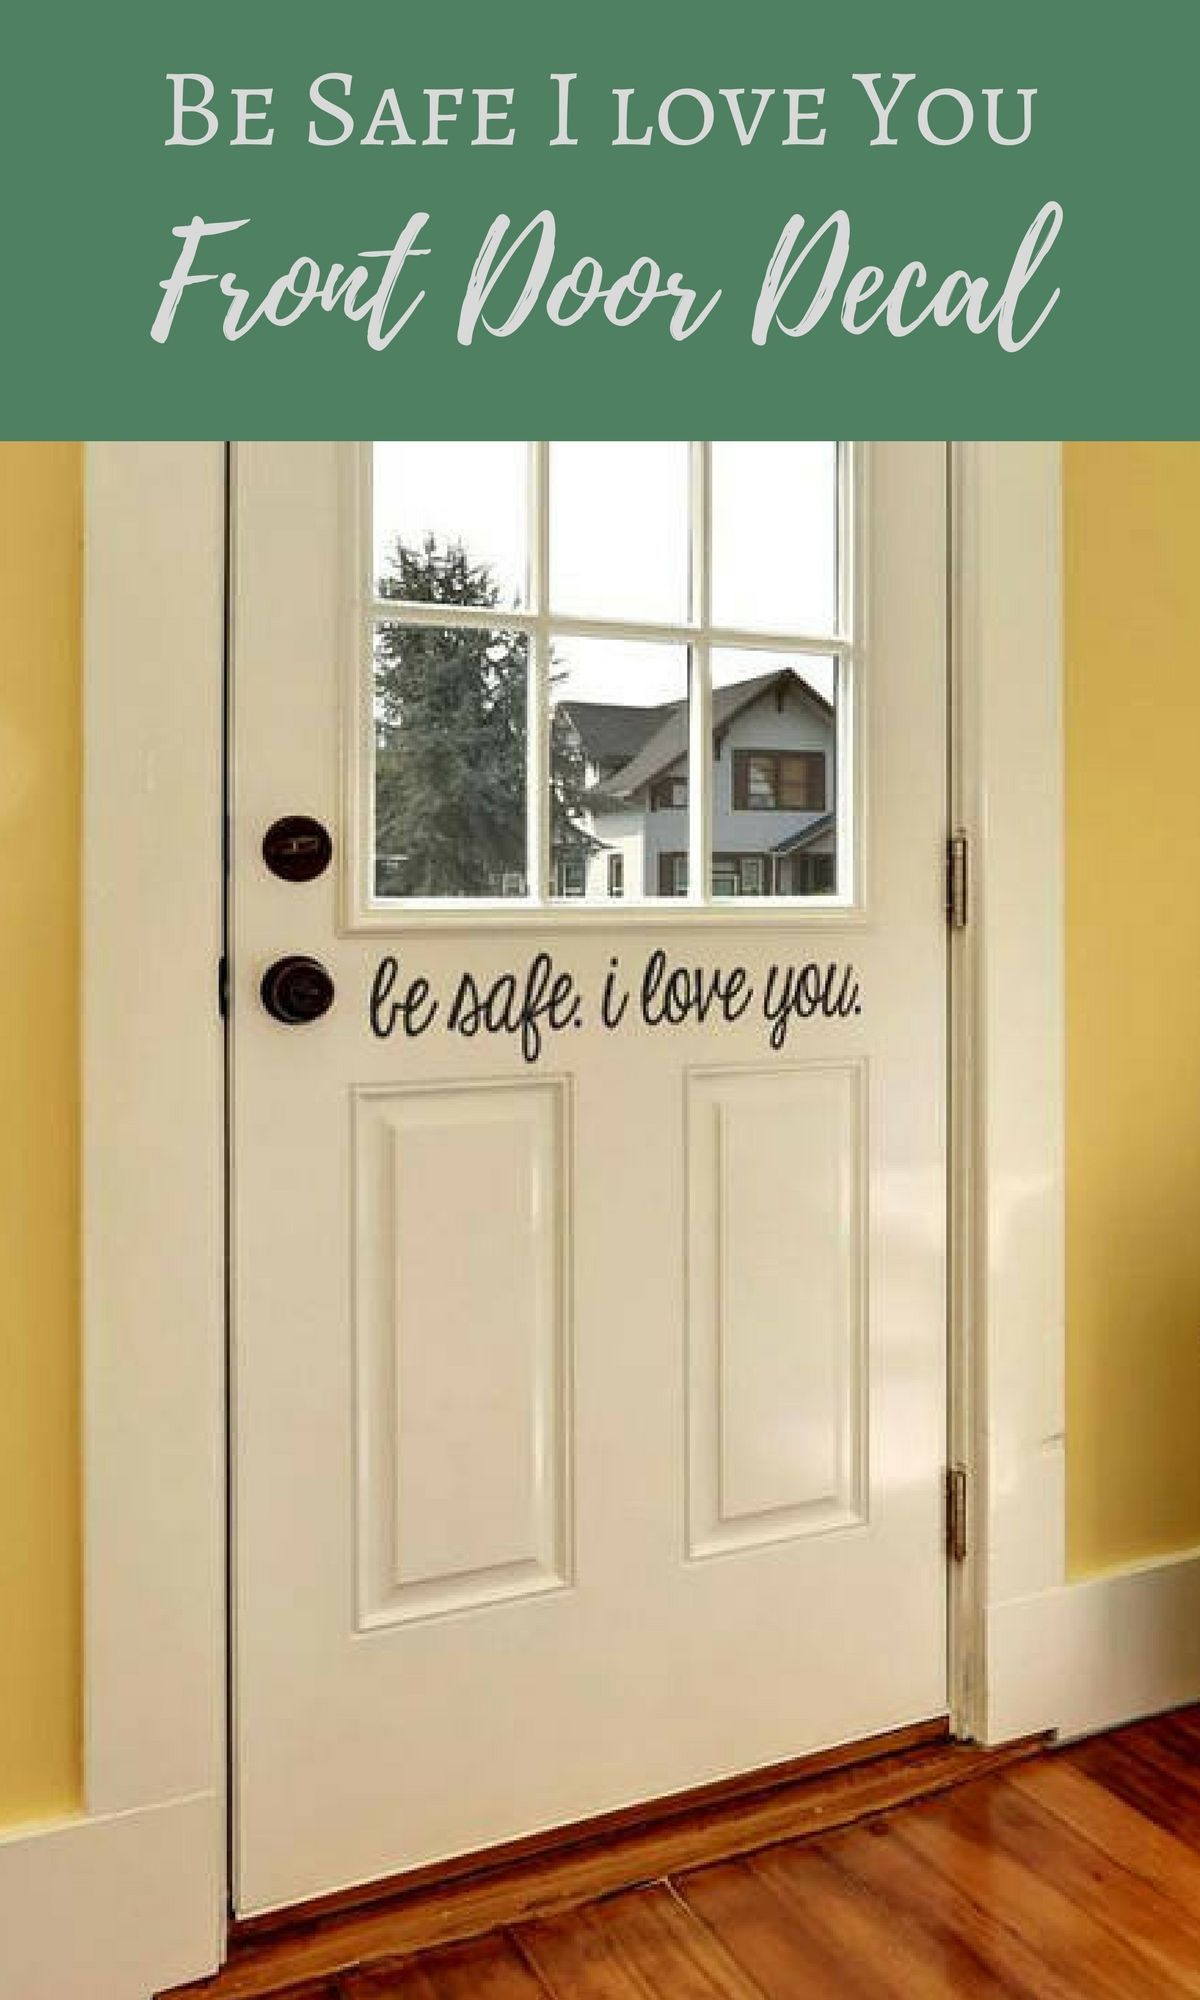 Be Safe I Love You Front Door Decal Be Safe Decal Vinyl Sticker For